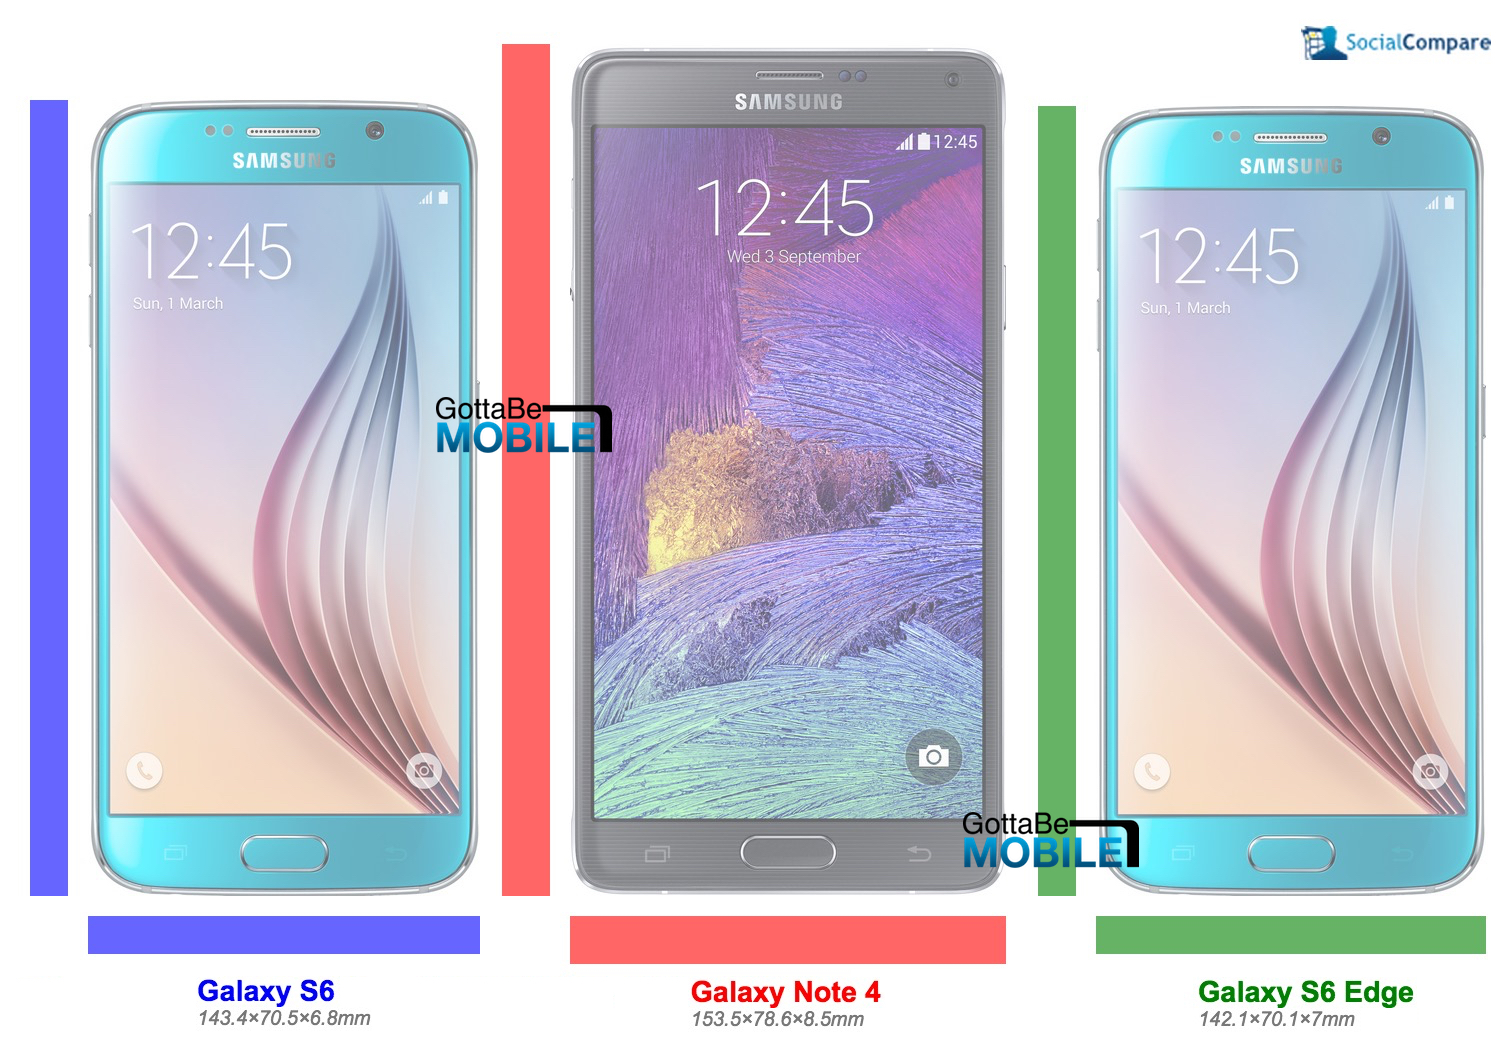 Galaxy S6 vs Galaxy Note 4 vs Galaxy S6 Edge size comparison.